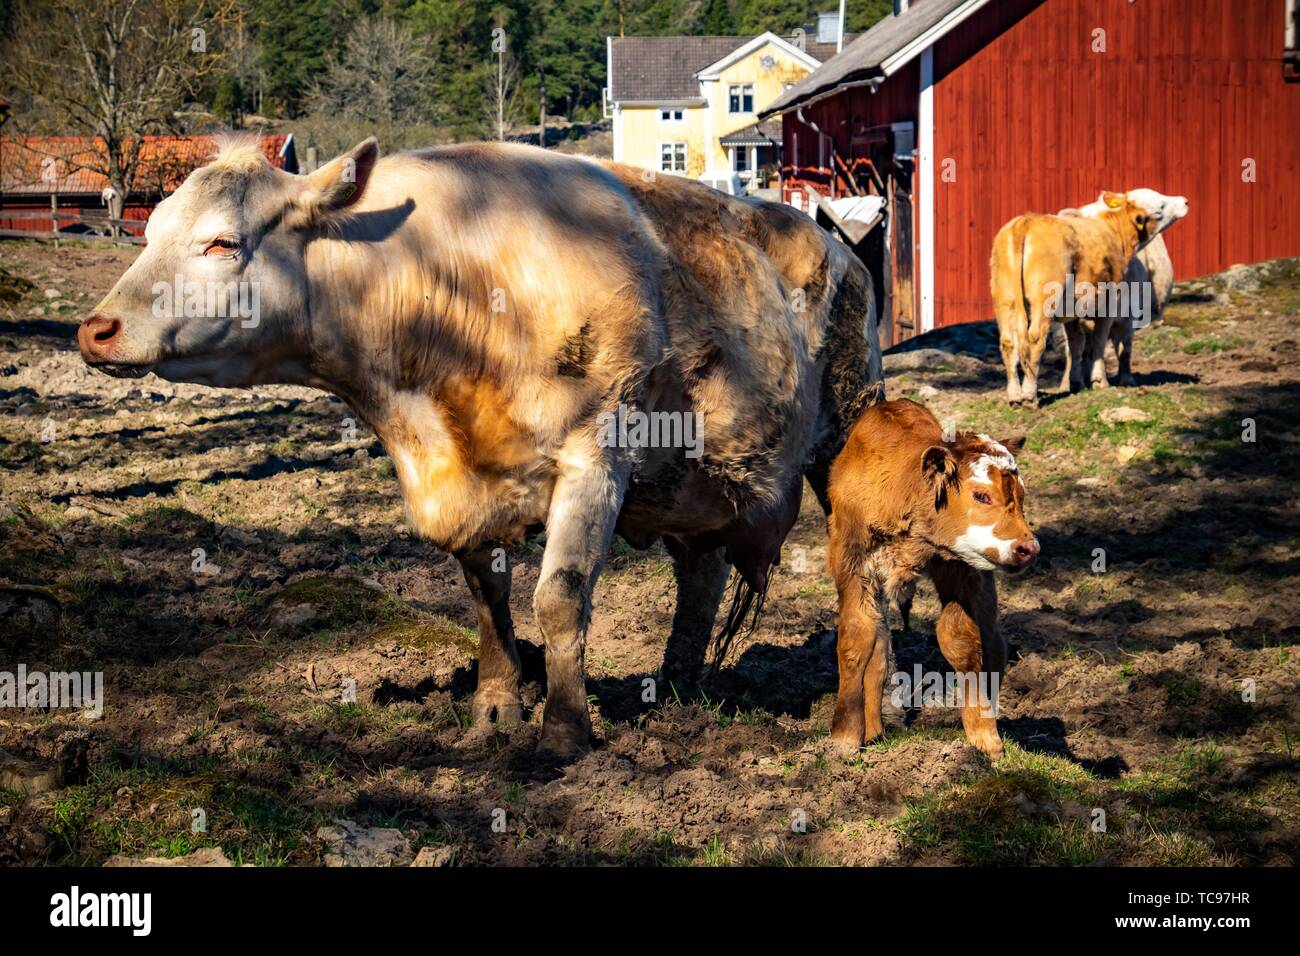 Newborn calf with mother cow on a grazing field in Sweden. - Stock Image